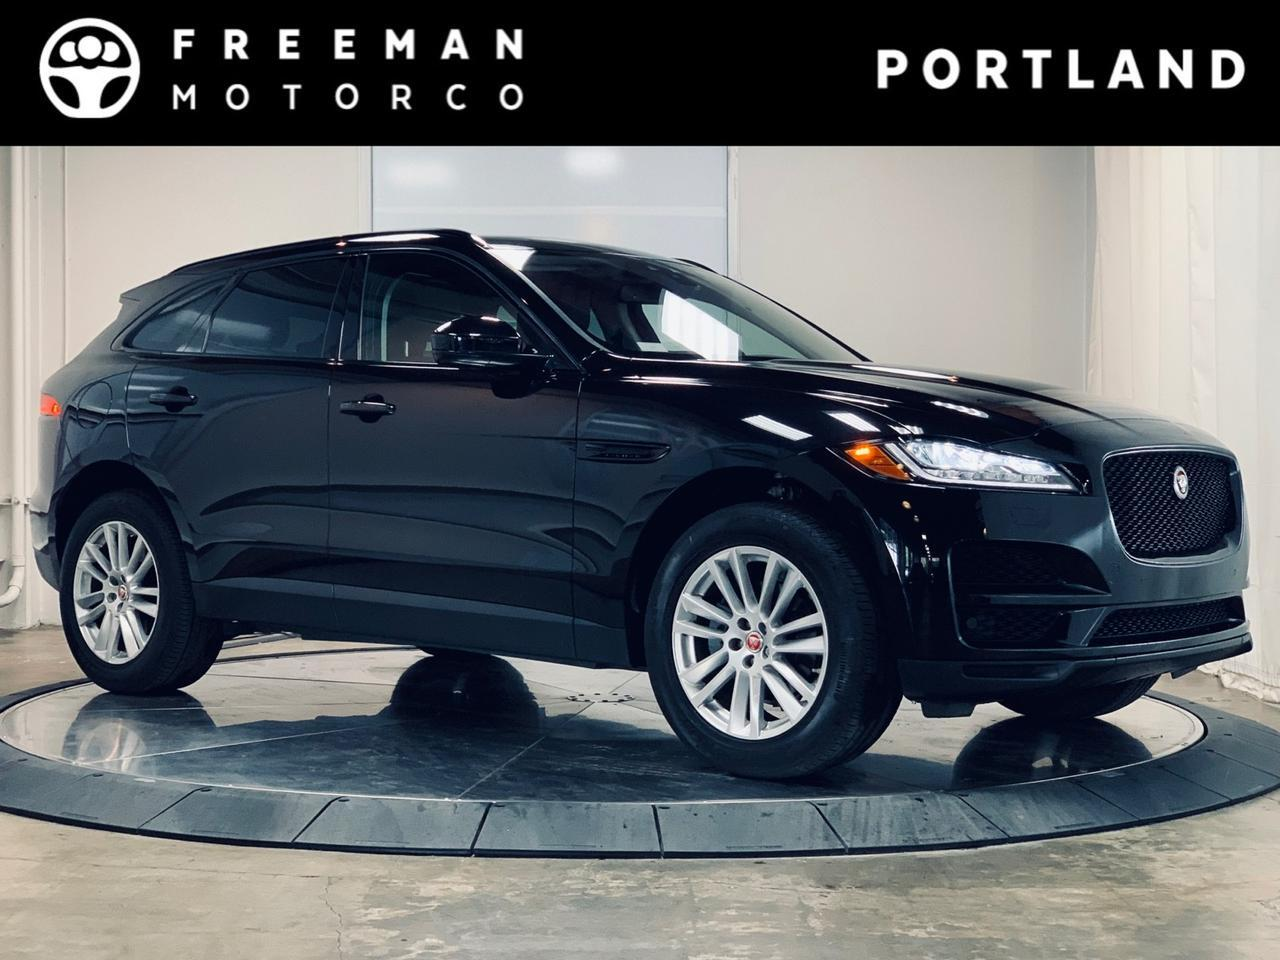 2018 Jaguar F-PACE 25t Prestige Blind Spot Monitor Heated & Cooled Seats Portland OR